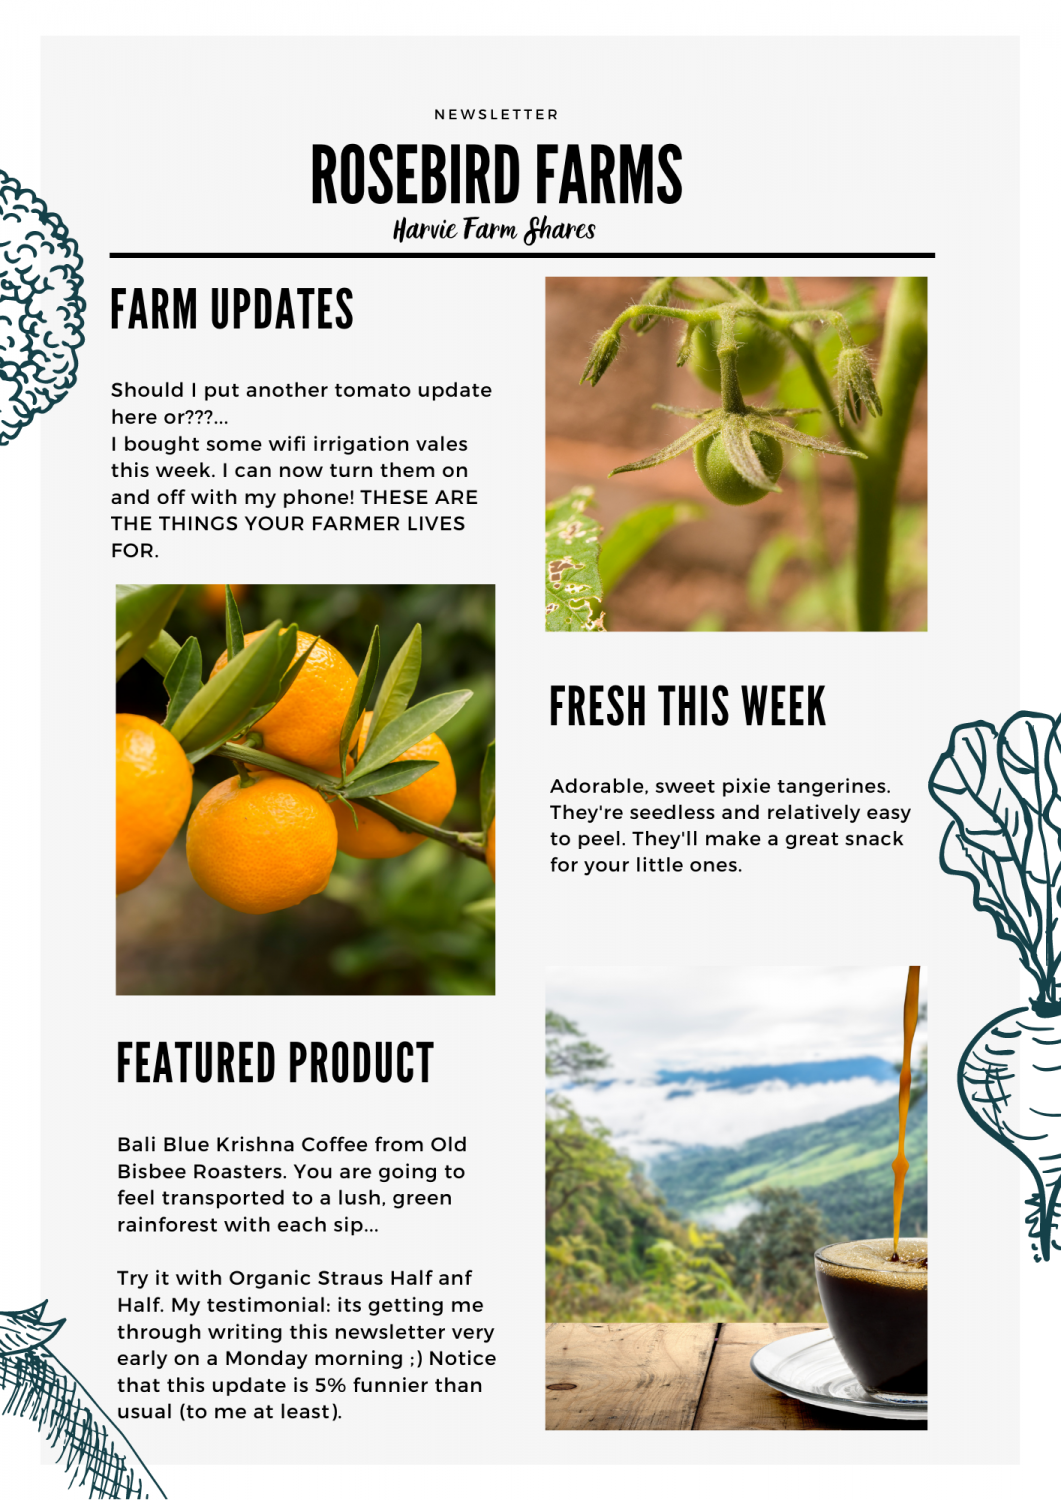 Next Happening: Farm Happenings for May 6, 2021